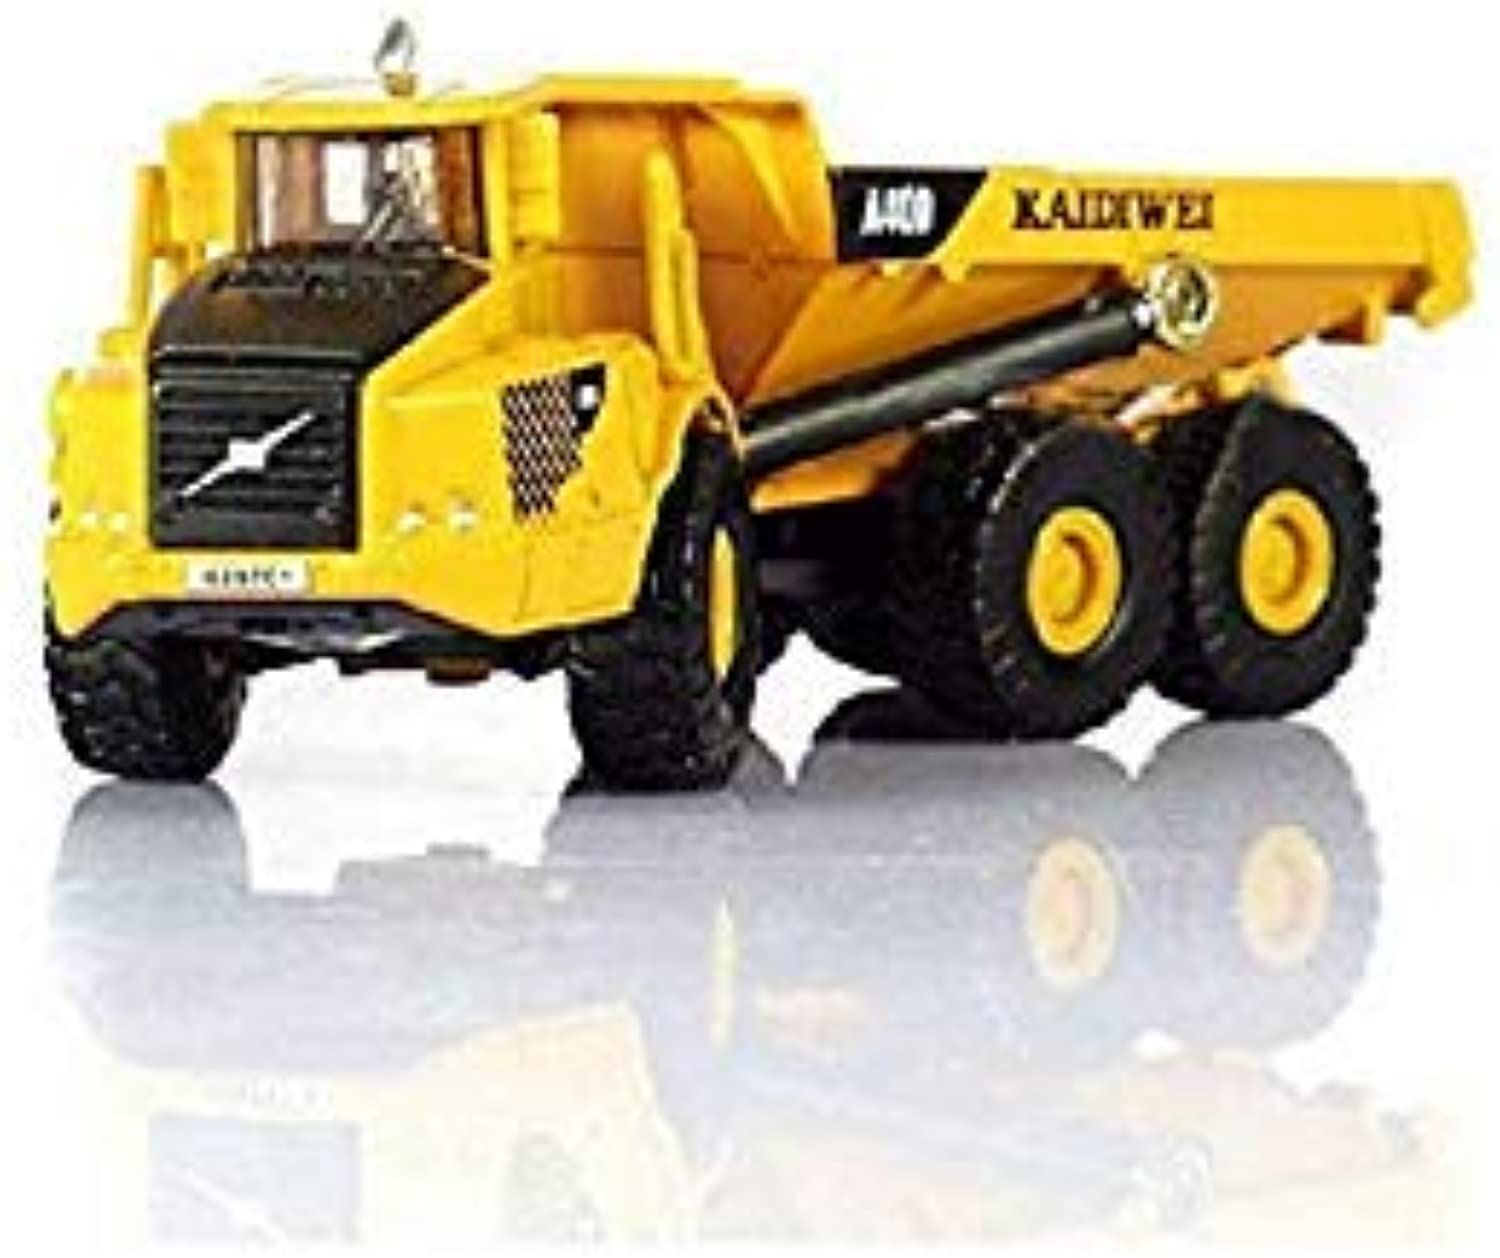 Hot Simulation 1 87 Scale Mini City Engineering Vehicle diecast 6 Wheel Dump Truck Model Alloy Toys Collection for Boys Gifts